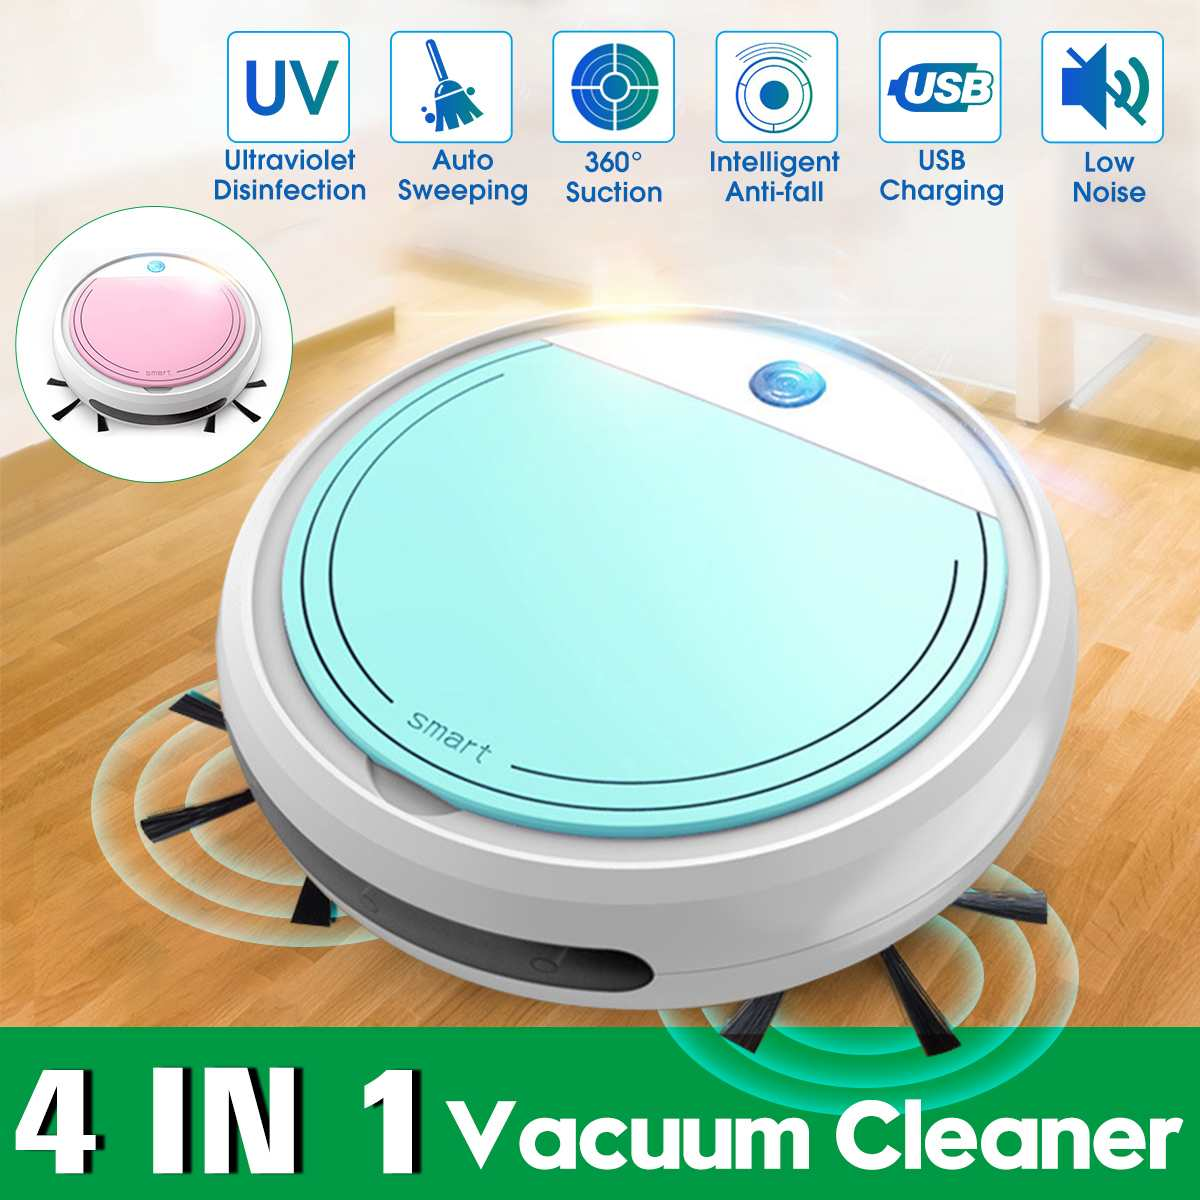 Multifunctional Robot Vacuum Cleaner 4 IN 1 Auto Rechargeable UV Sterilizer Sterilization Smart Sweeping Robot Cleaning Tools